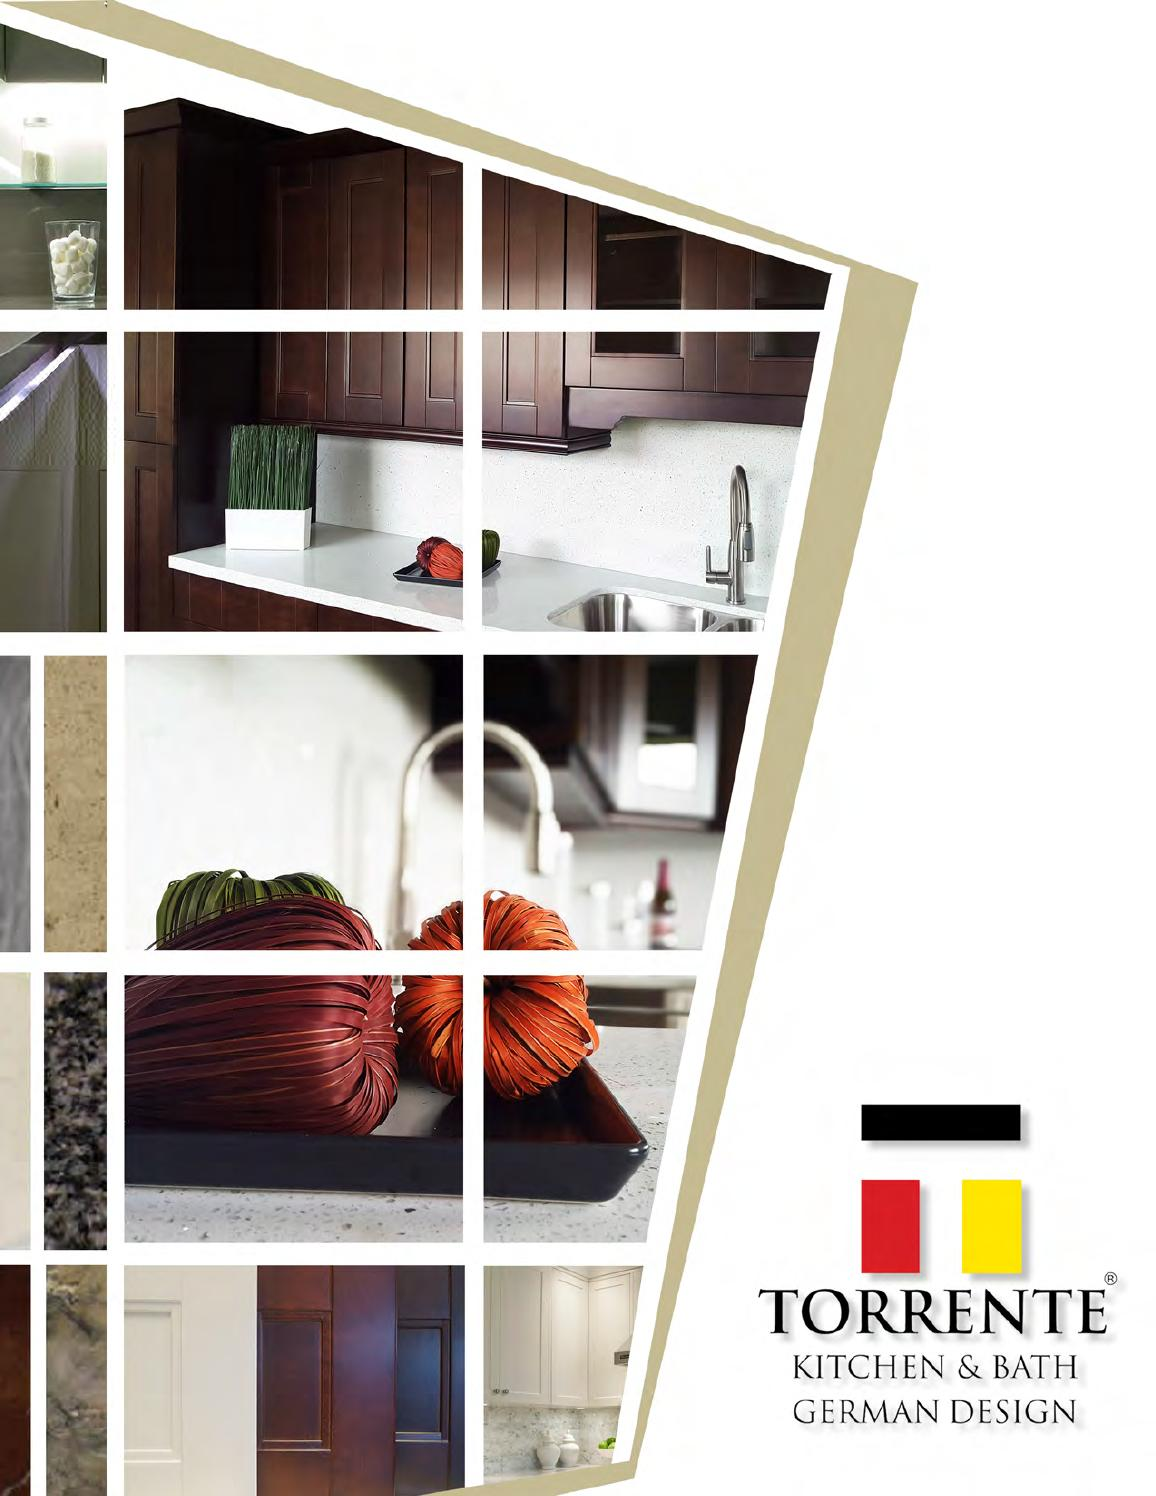 torrente kitchen bath by maria mucarcel issuu